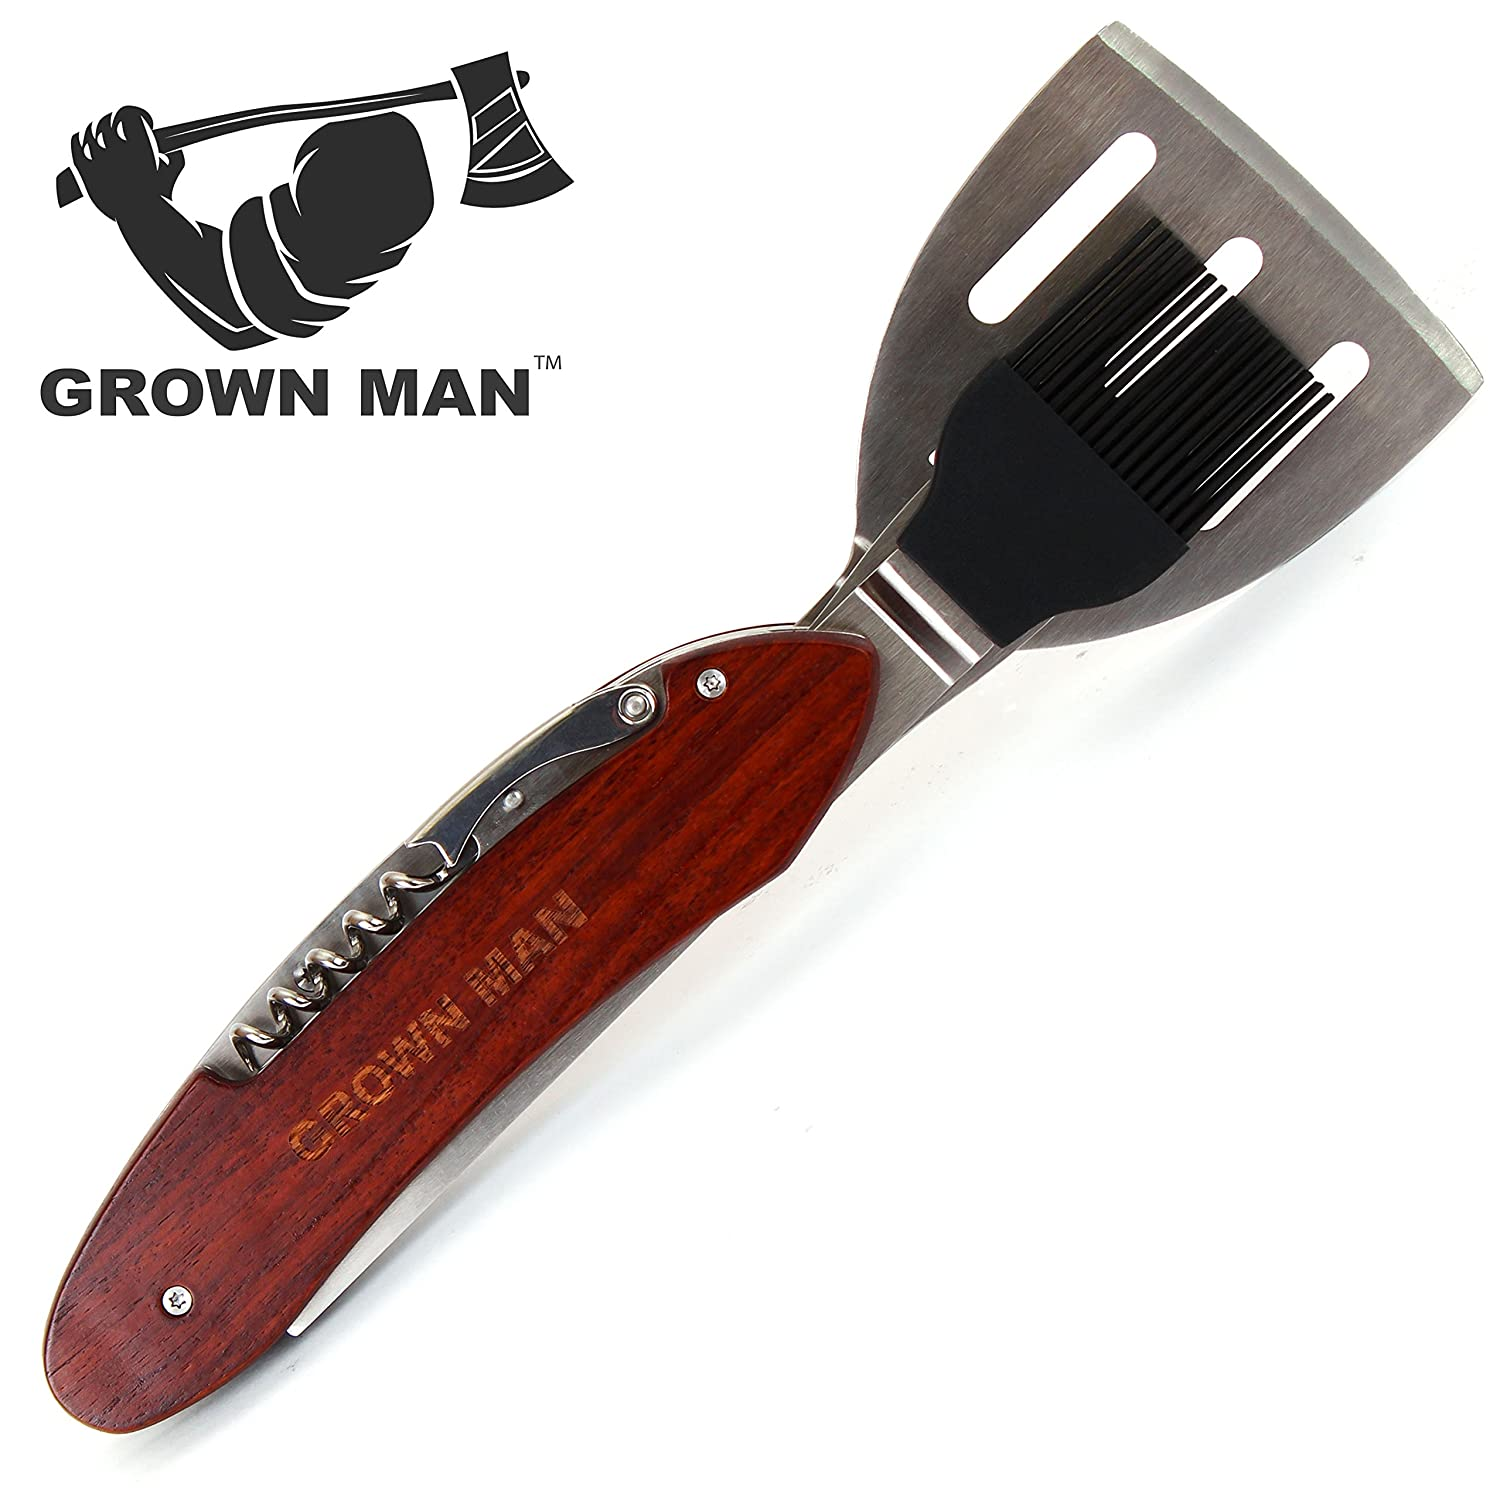 Grown Man BBQ Multi Tool – Includes Stainless Steel Spatula, Fork, Grill Brush, and more – Grilling Multitool for Backyard Grilling, Tailgating, and Camping